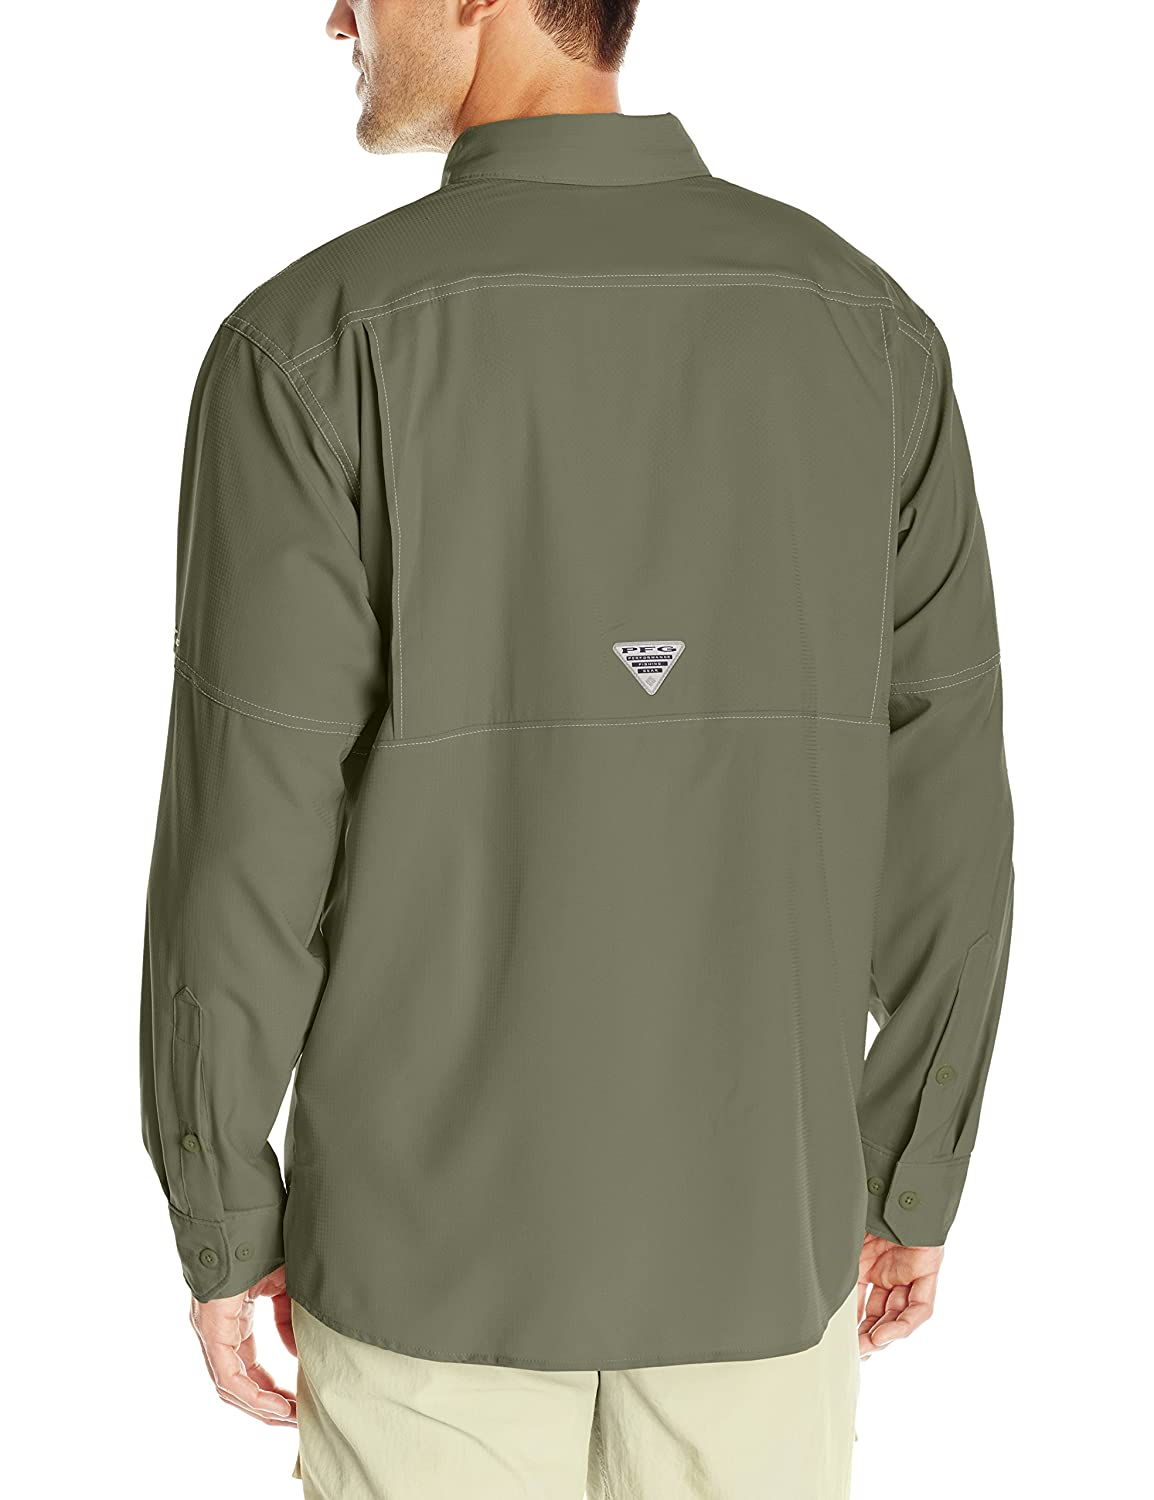 Moisture Wicking Fabric UPF 40 Protection Columbia Mens Low Drag Offshore Long Sleeve Shirt